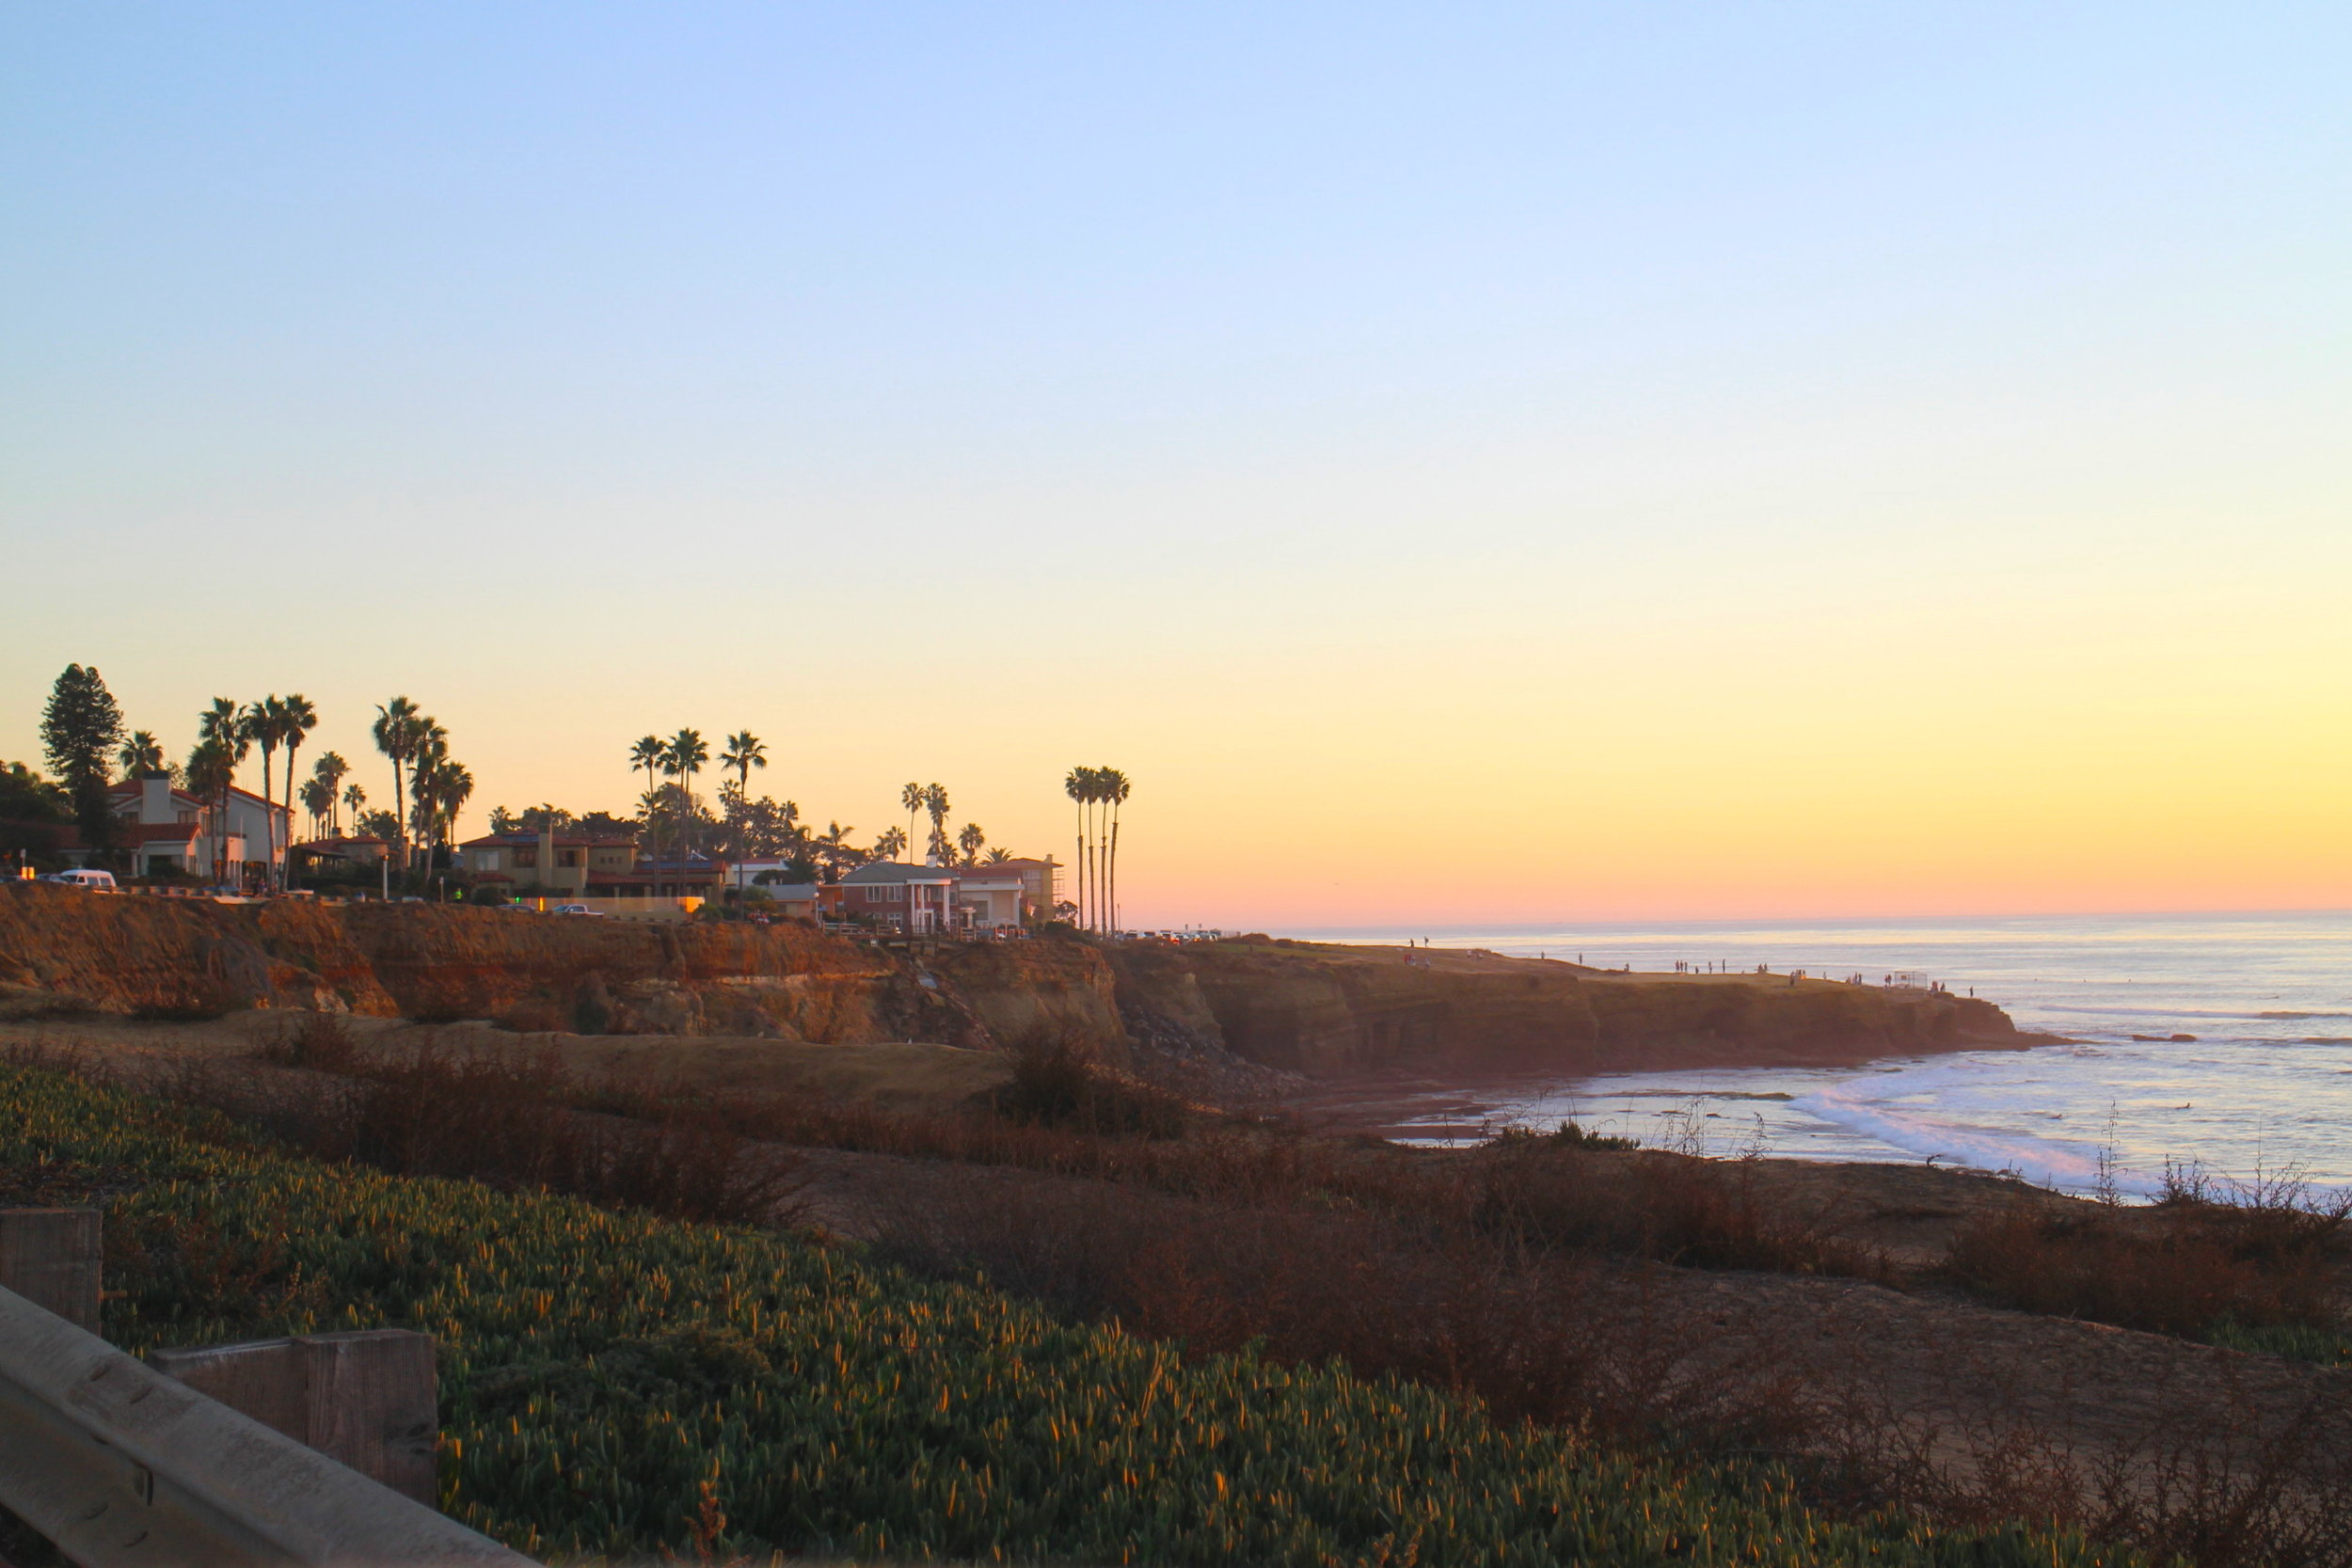 I drive about 10 minutes from my house and reach the Sunset Cliffs. These are not just an attraction for visitors; locals like to go there for a run along the one and a half mile long shoreline - part of the Sunset Cliffs Natural Park -, meditate, have picnics, and watch the sun set.  If you rather feel like driving, start at Adair St. in Ocean Beach and then simply follow Sunset Cliffs Boulevard.   The views are  always  stunning, no matter if rain or shine.  It's the perfect spot away from the city life (although right in the city), and around sunset time, it gets fairly busy. This, however, depends on the clouds, of course. You can watch the (advanced) surfers ride the perfect waves. San Diego is such a surfer hub. Ocean-gazers, you will enjoy this spot.  I love to come here, to clear my head, have a moment of appreciation and be happy that I have the chance to live in this city, to be able to go a way that I have been wanting to got for many years - and embrace life to the best of my ability.  If it's a clear evening, be prepared for a dramatic sunset!  (But please don't look at your phone as you go; you are running the risk of falling from the cliffs. Not kidding: this has happened before, sadly.)